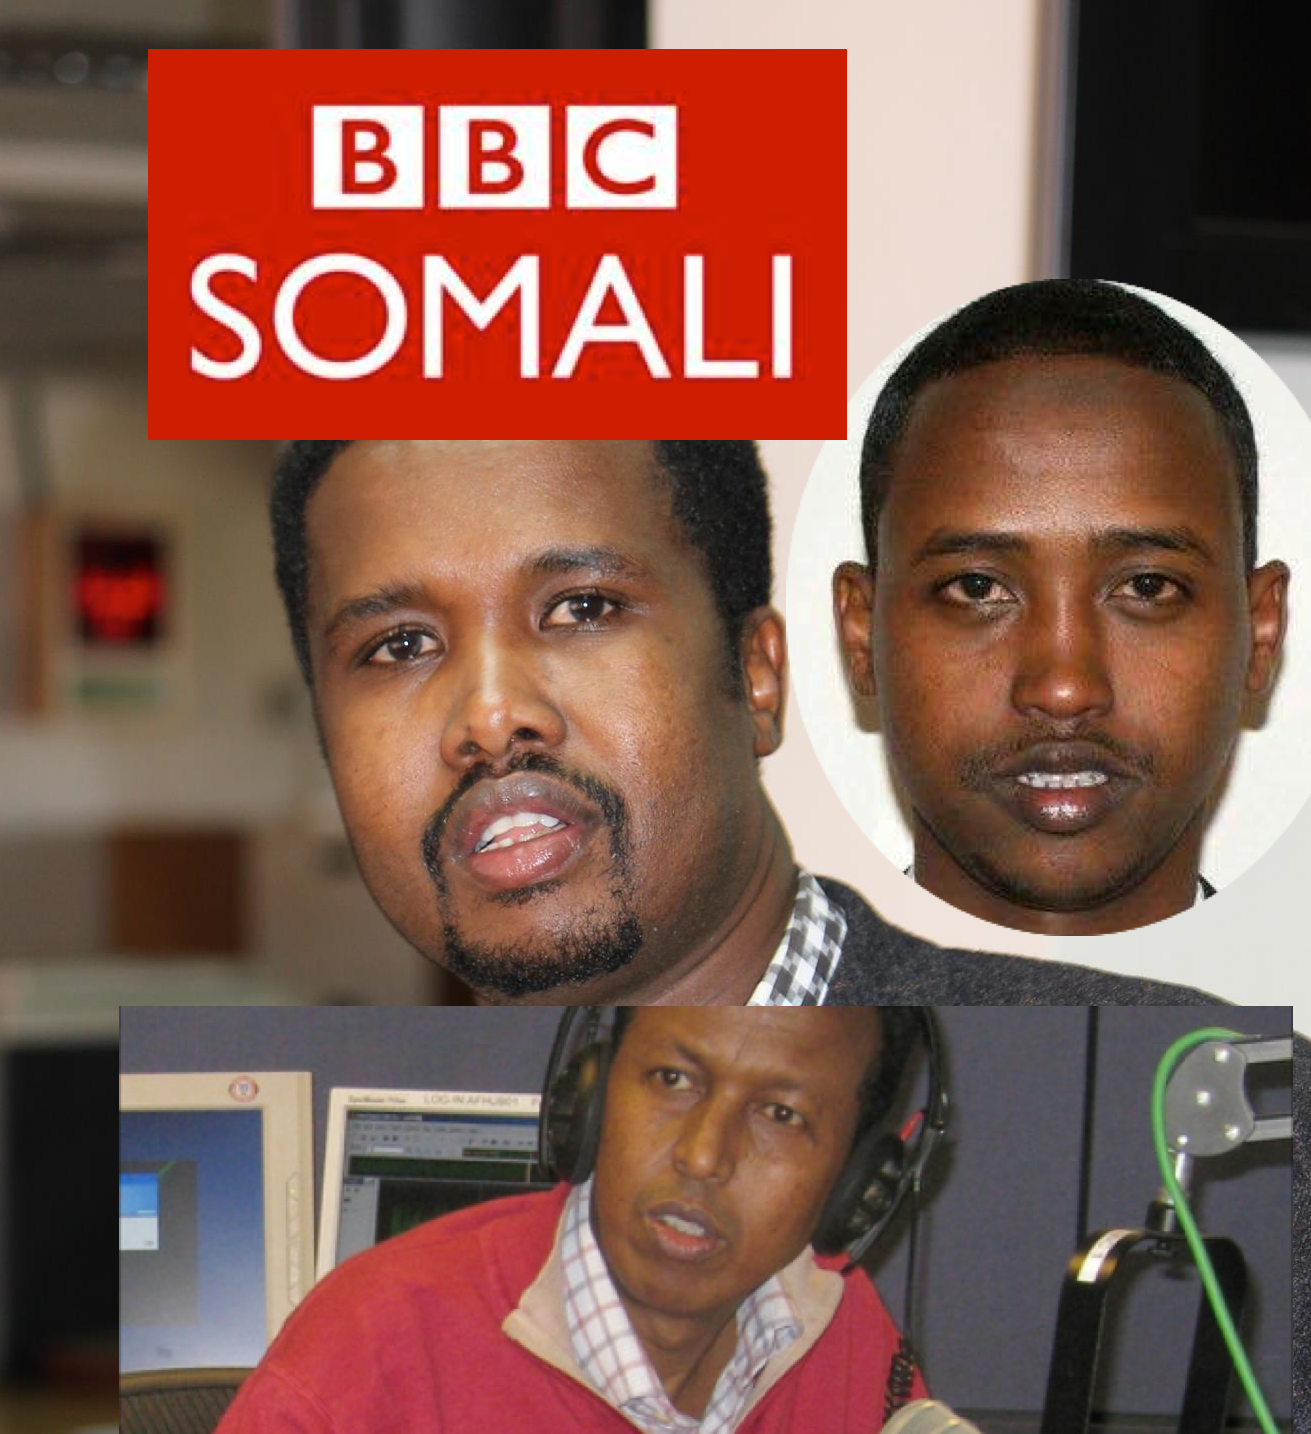 Kenya:A fierce rivalry between BBC Somali journalists emerged because  of their clannish mentality.